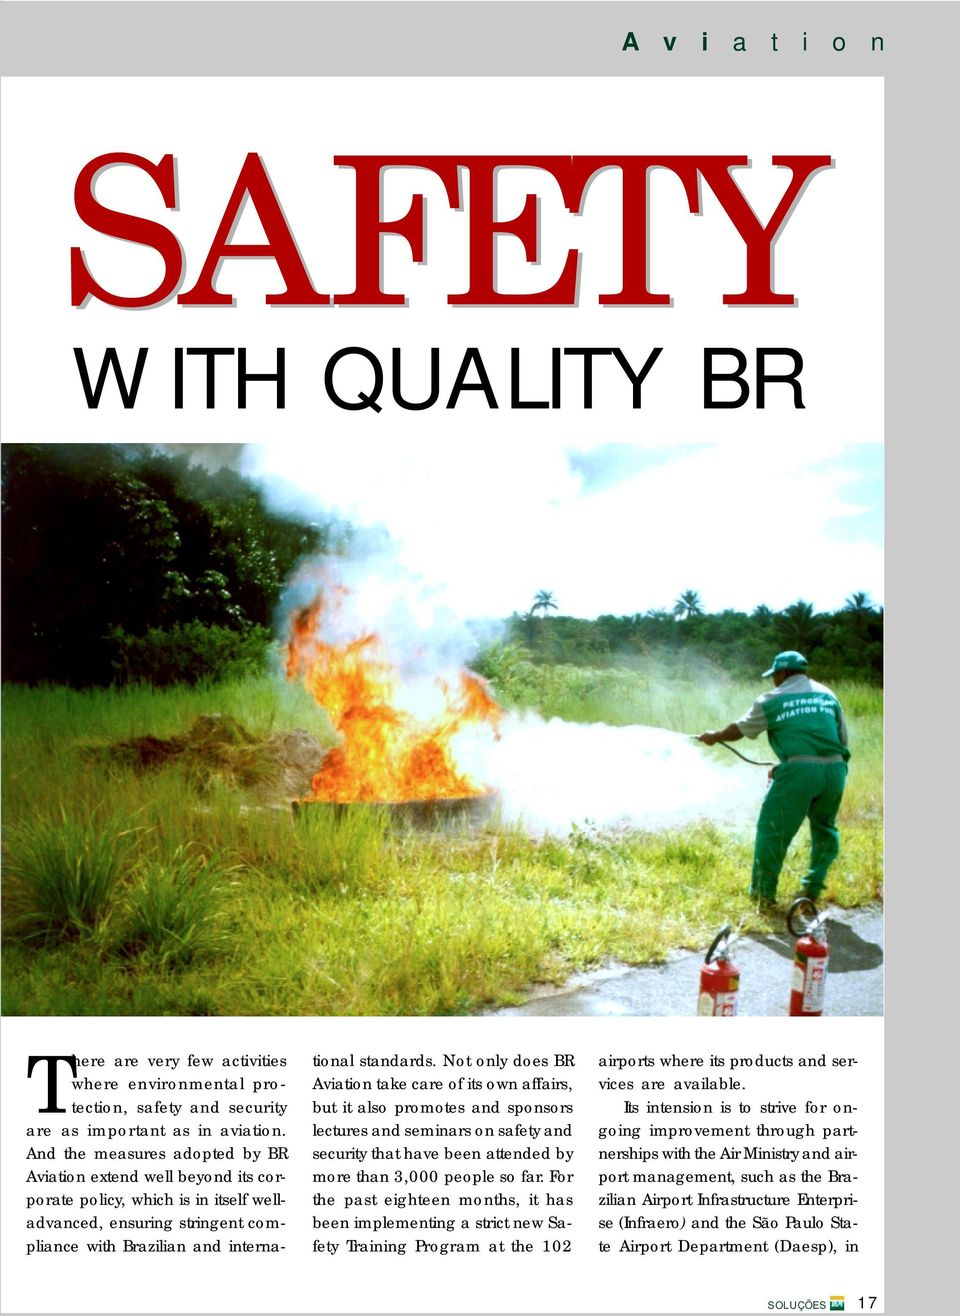 Not only does BR Aviation take care of its own affairs, but it also promotes and sponsors lectures and seminars on safety and security that have been attended by more than 3,000 people so far.